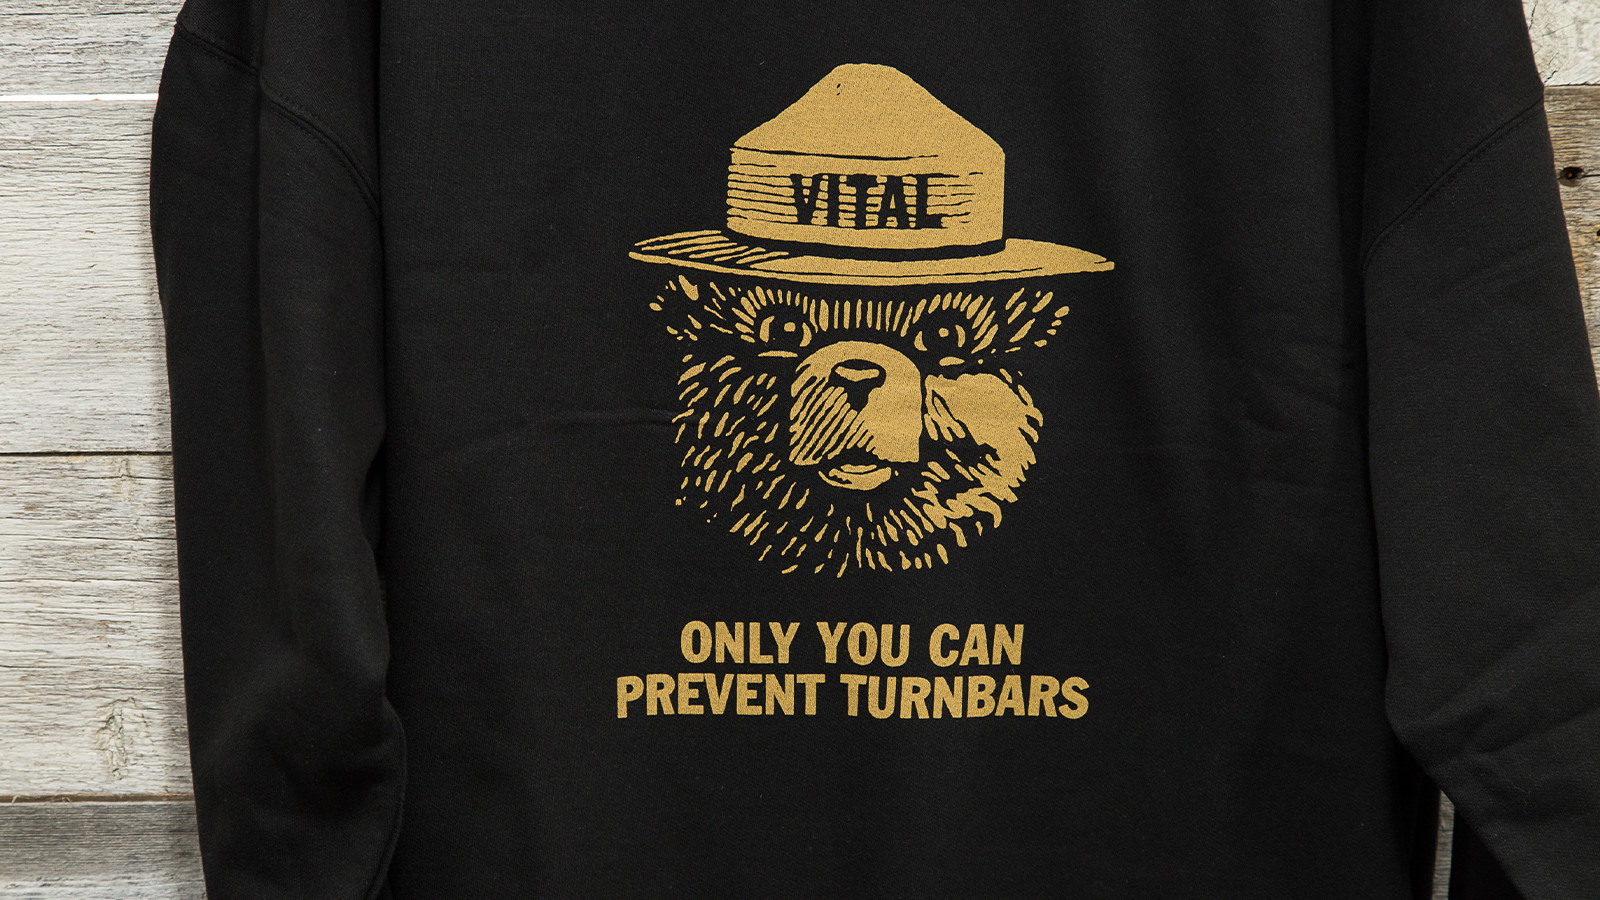 Vital PSA: Only You Can Prevent Turnbars